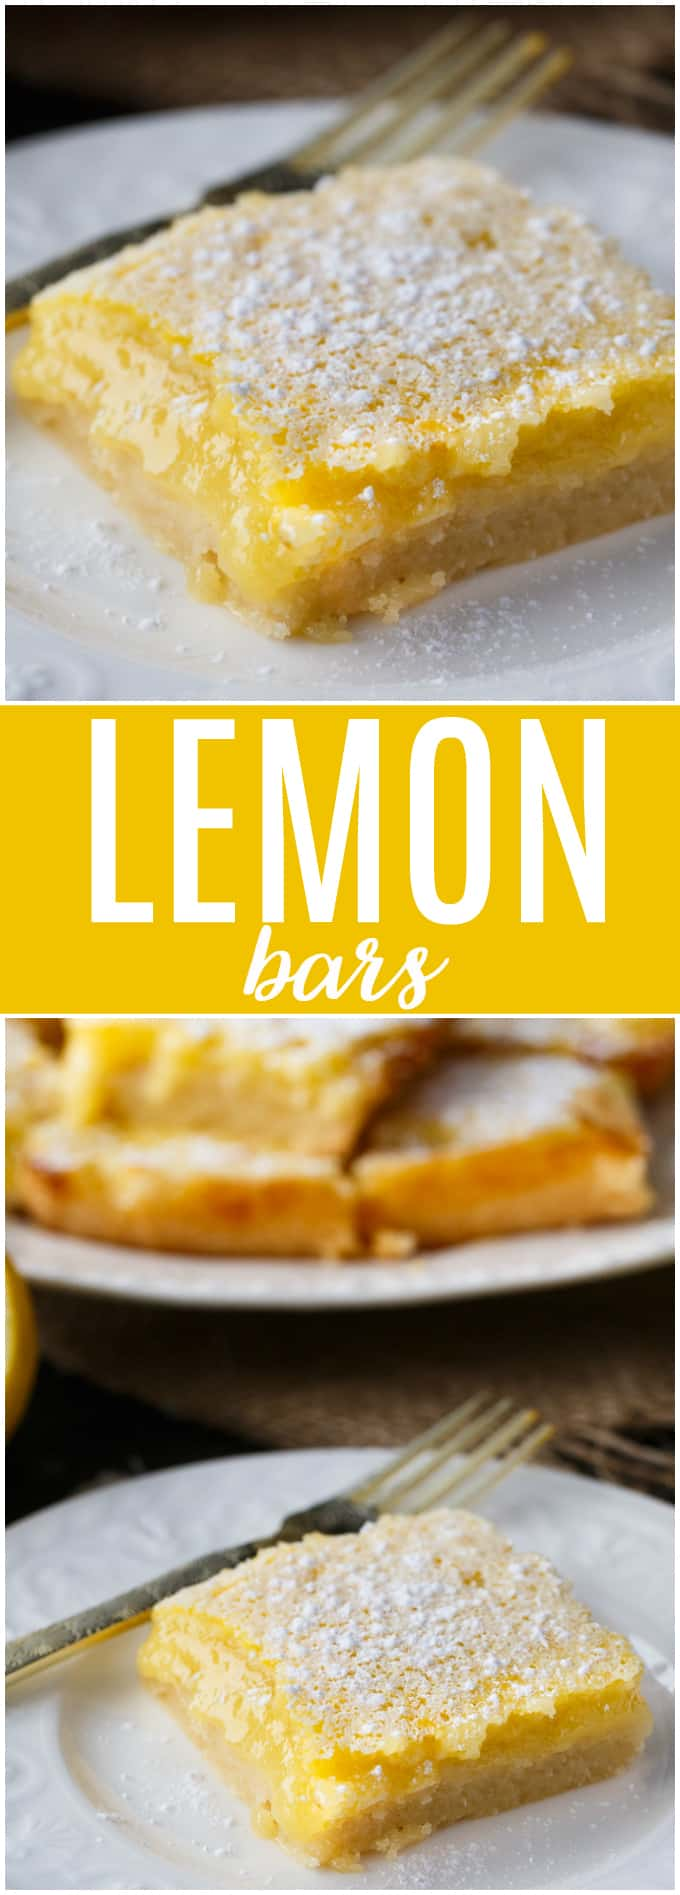 Lemon Bars - This easy lemon dessert will practically melt in your mouth!